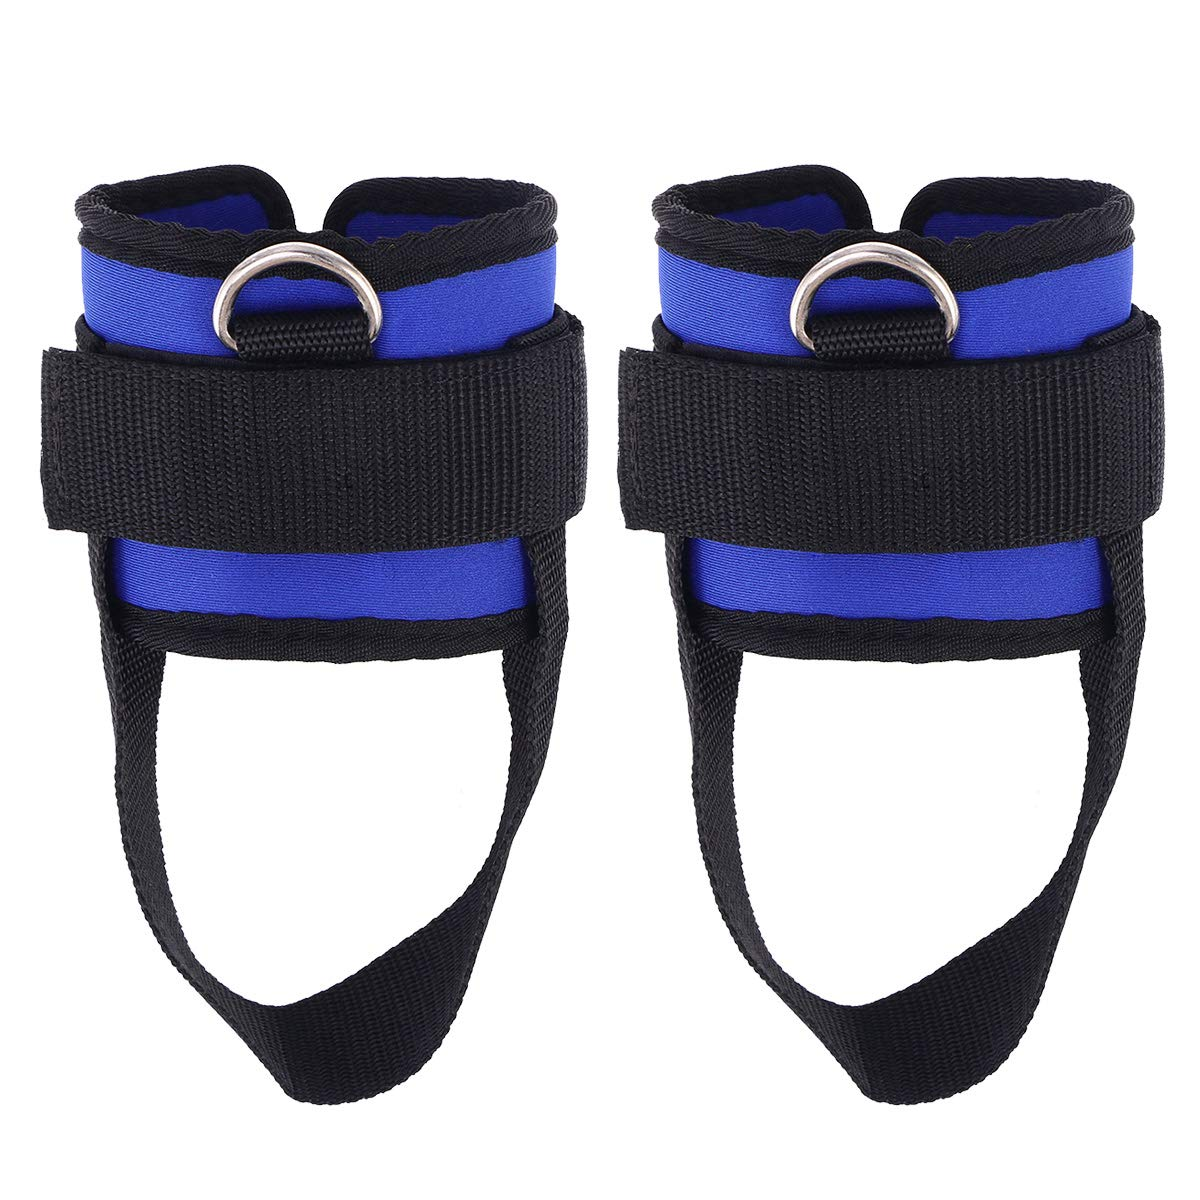 VORCOOL Sport Ankle Strap Padded d-Ring Ankle Cuffs for Gym Workouts Cable Machines Butt and Leg Weights Exercises 2pcs (Blue)